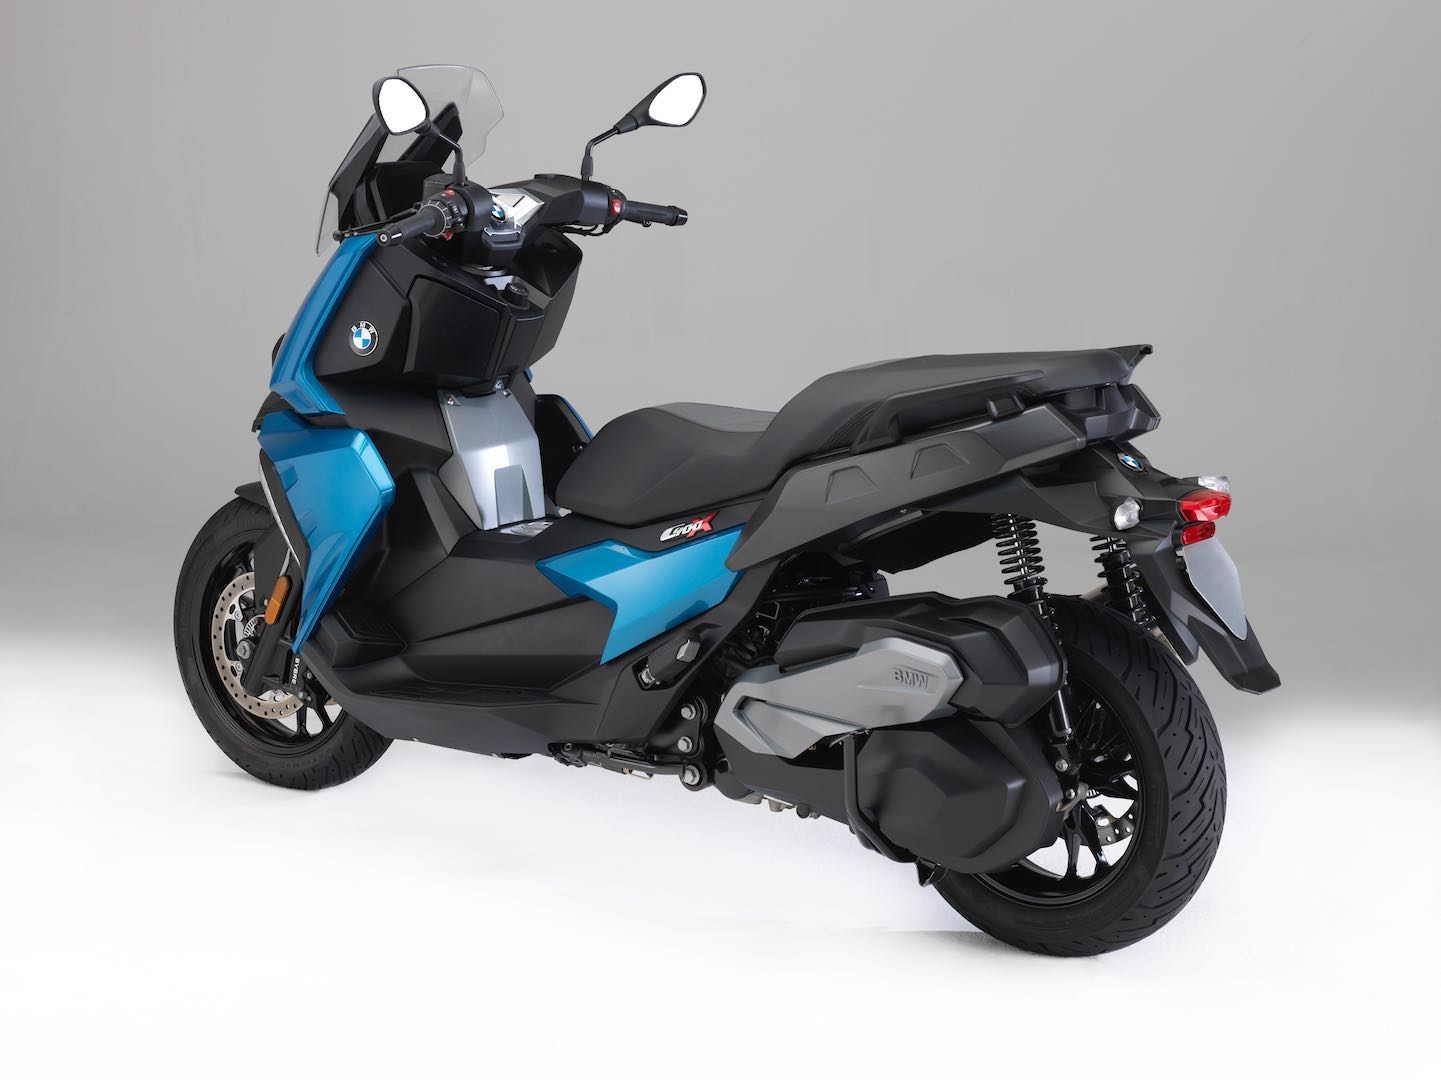 2018 bmw c 400 x scooter first look 10 fast facts. Black Bedroom Furniture Sets. Home Design Ideas